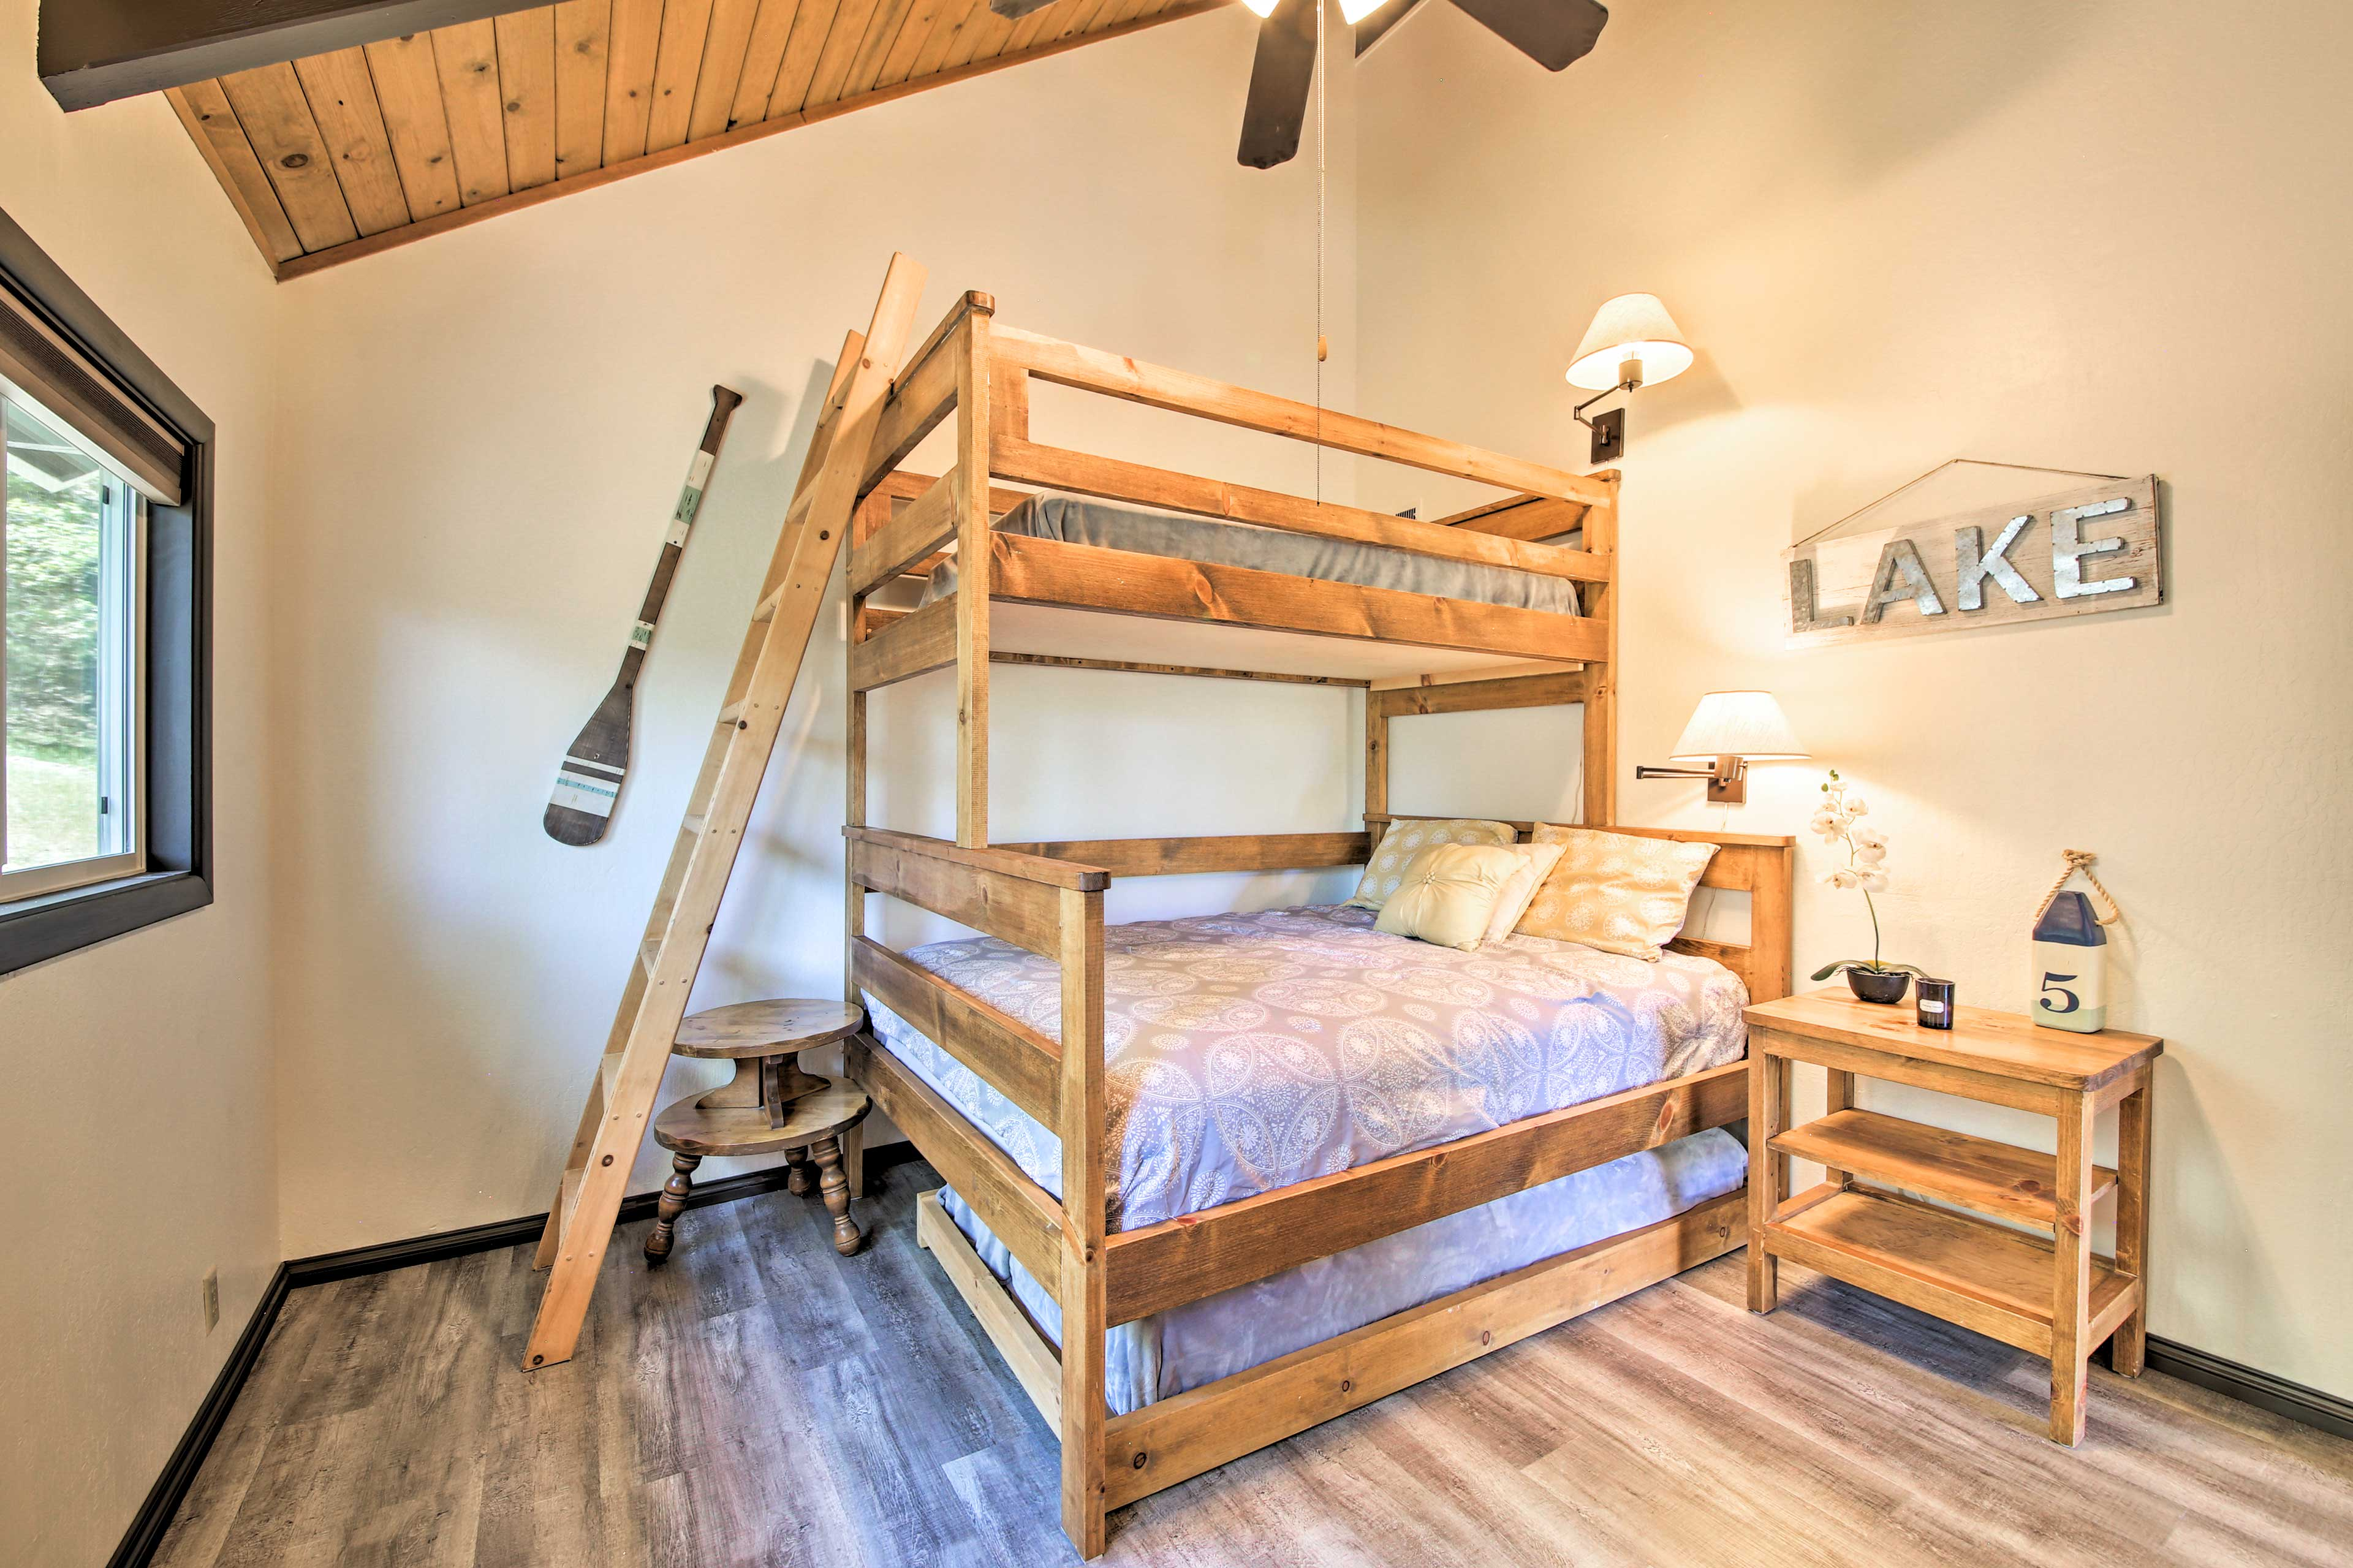 Kids will love sharing this bunk room, complete with sleeping for 4 people.